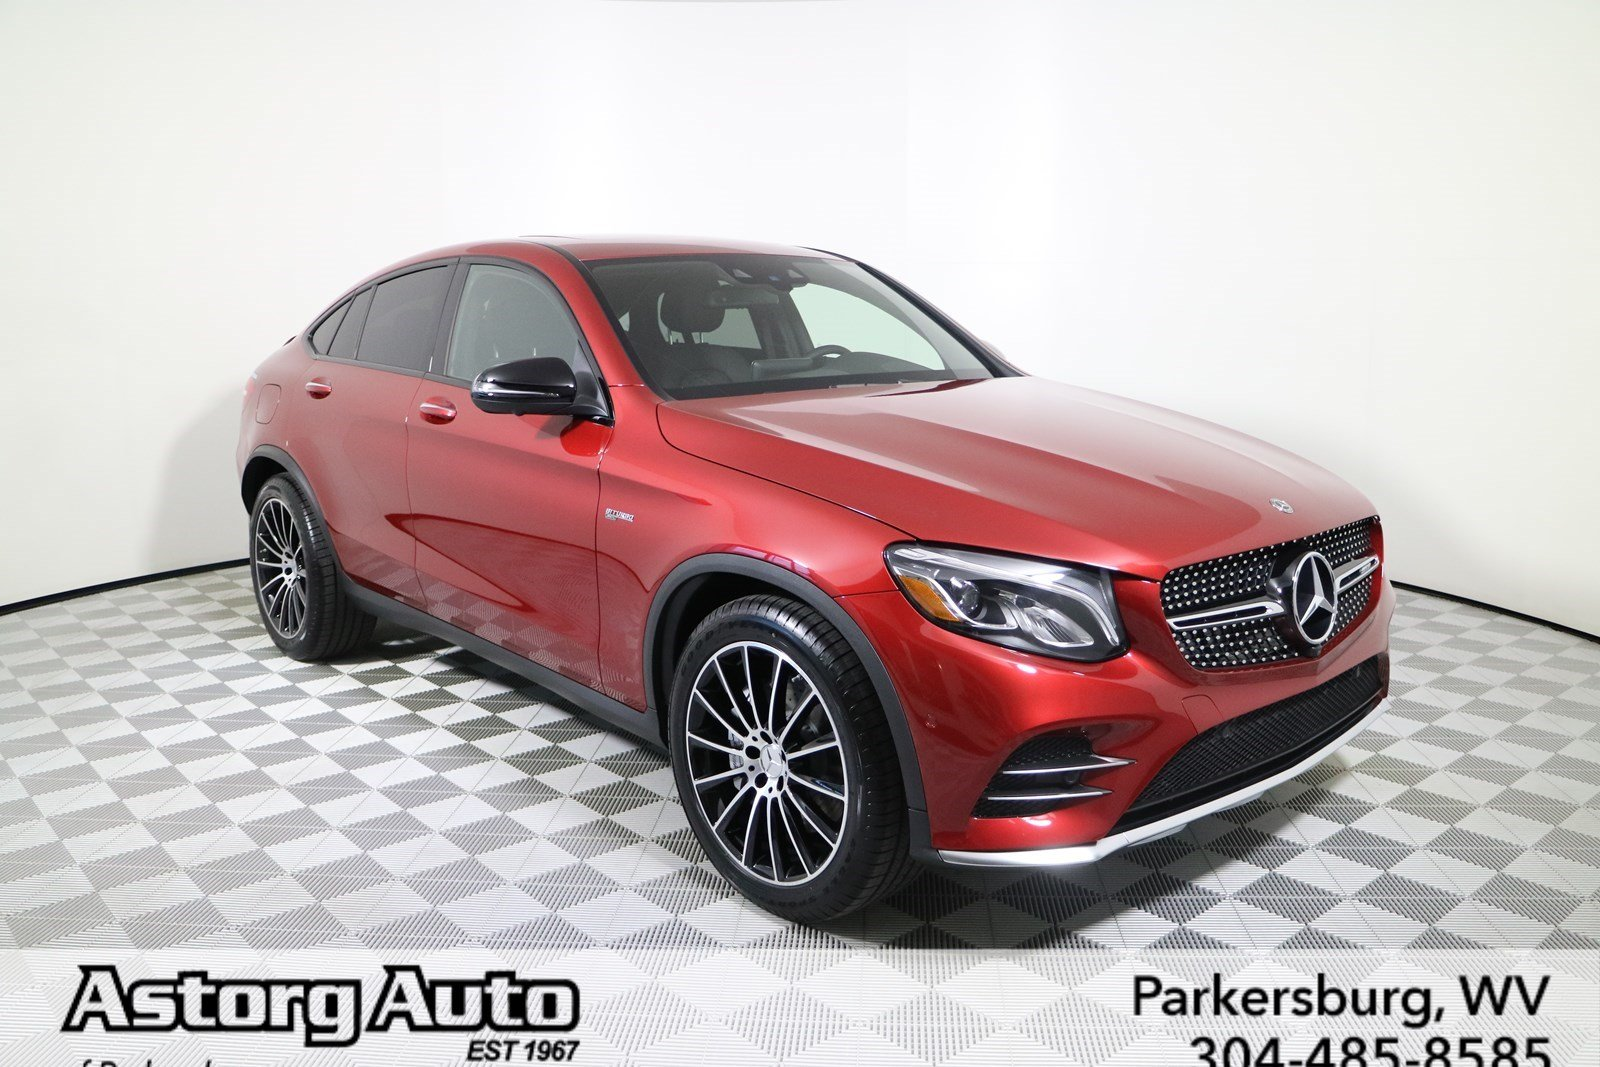 New 2017 mercedes benz glc glc 43 amg 4matic coupe coupe for 2017 amg glc 43 coupe mercedes benz